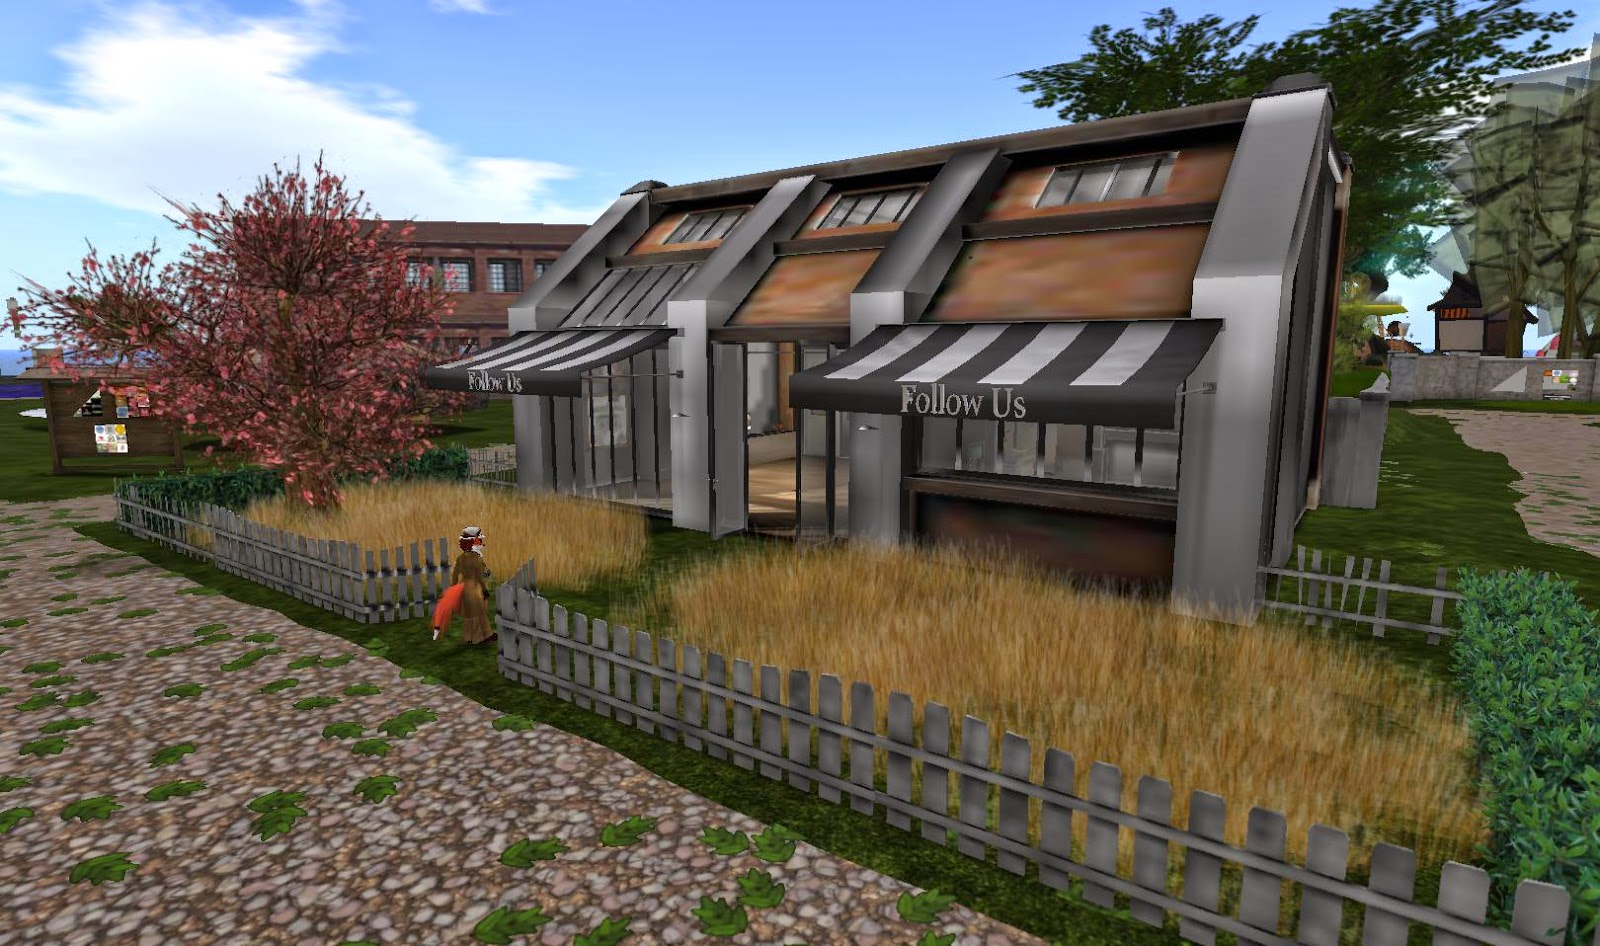 A Few Days Ago On September 16, The 2014 Home And Garden Expo Opened In  Second Life. Described As Having